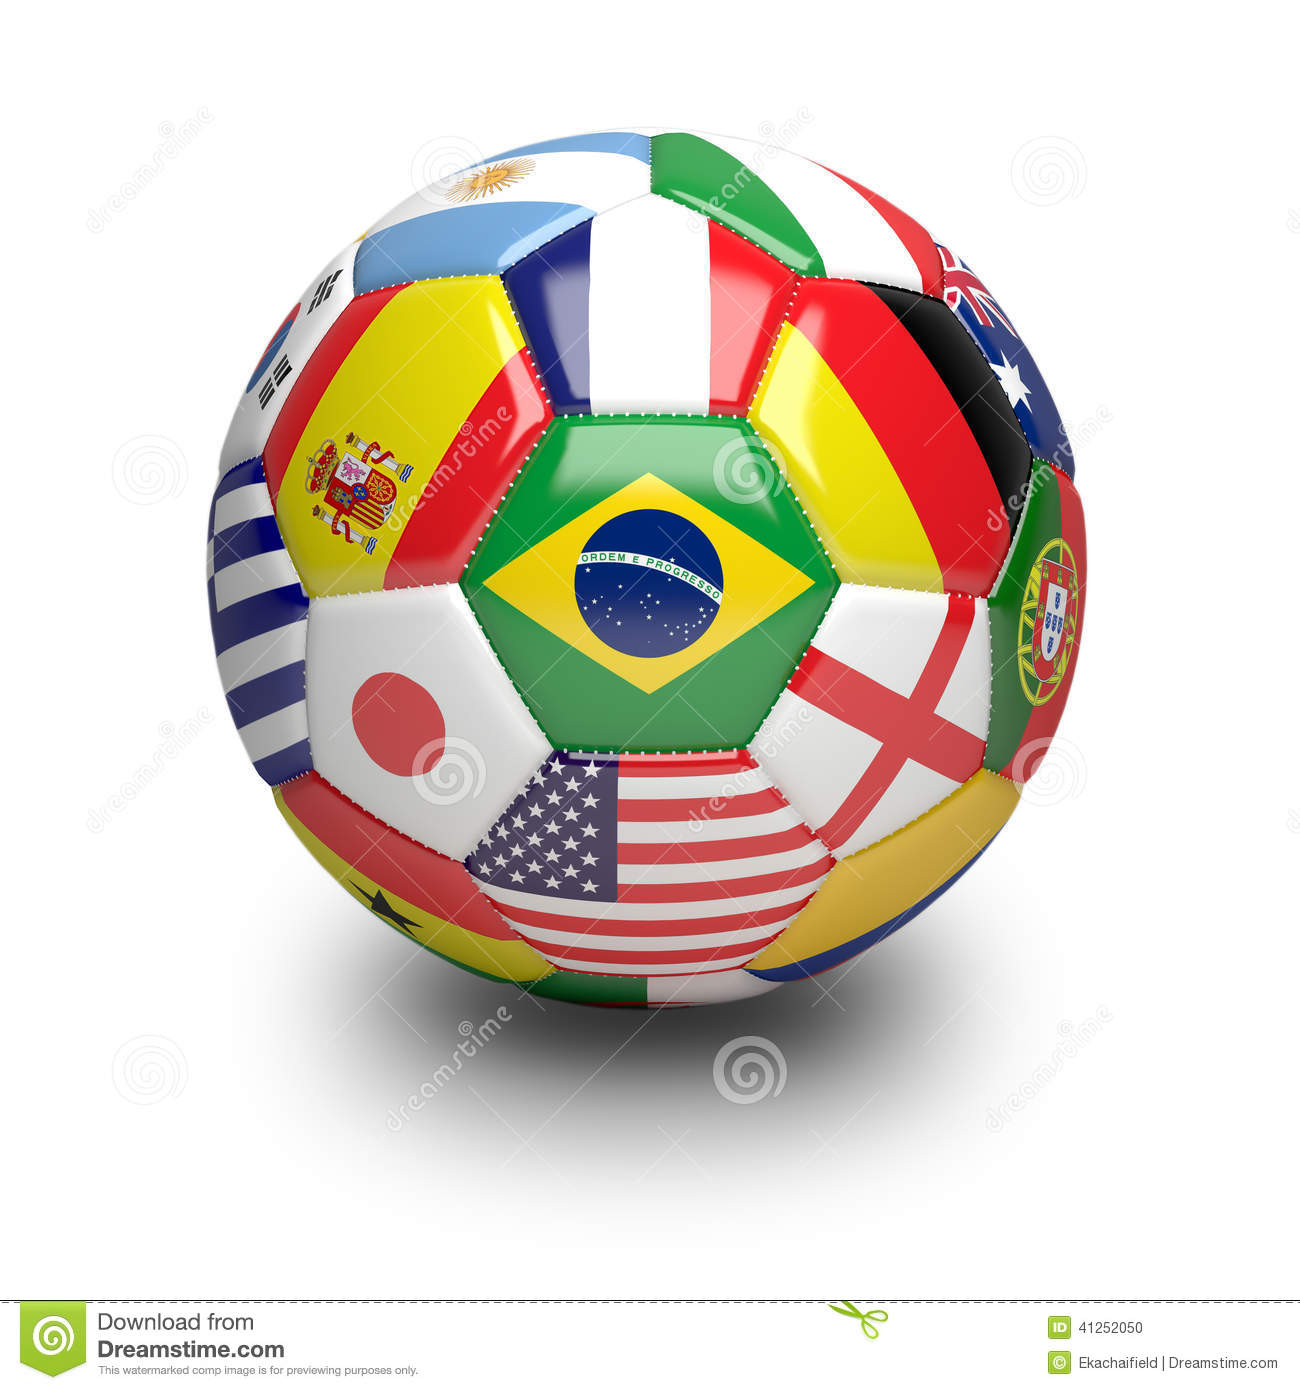 Football Soccer Ball With World Teams Flags Royalty-Free ...